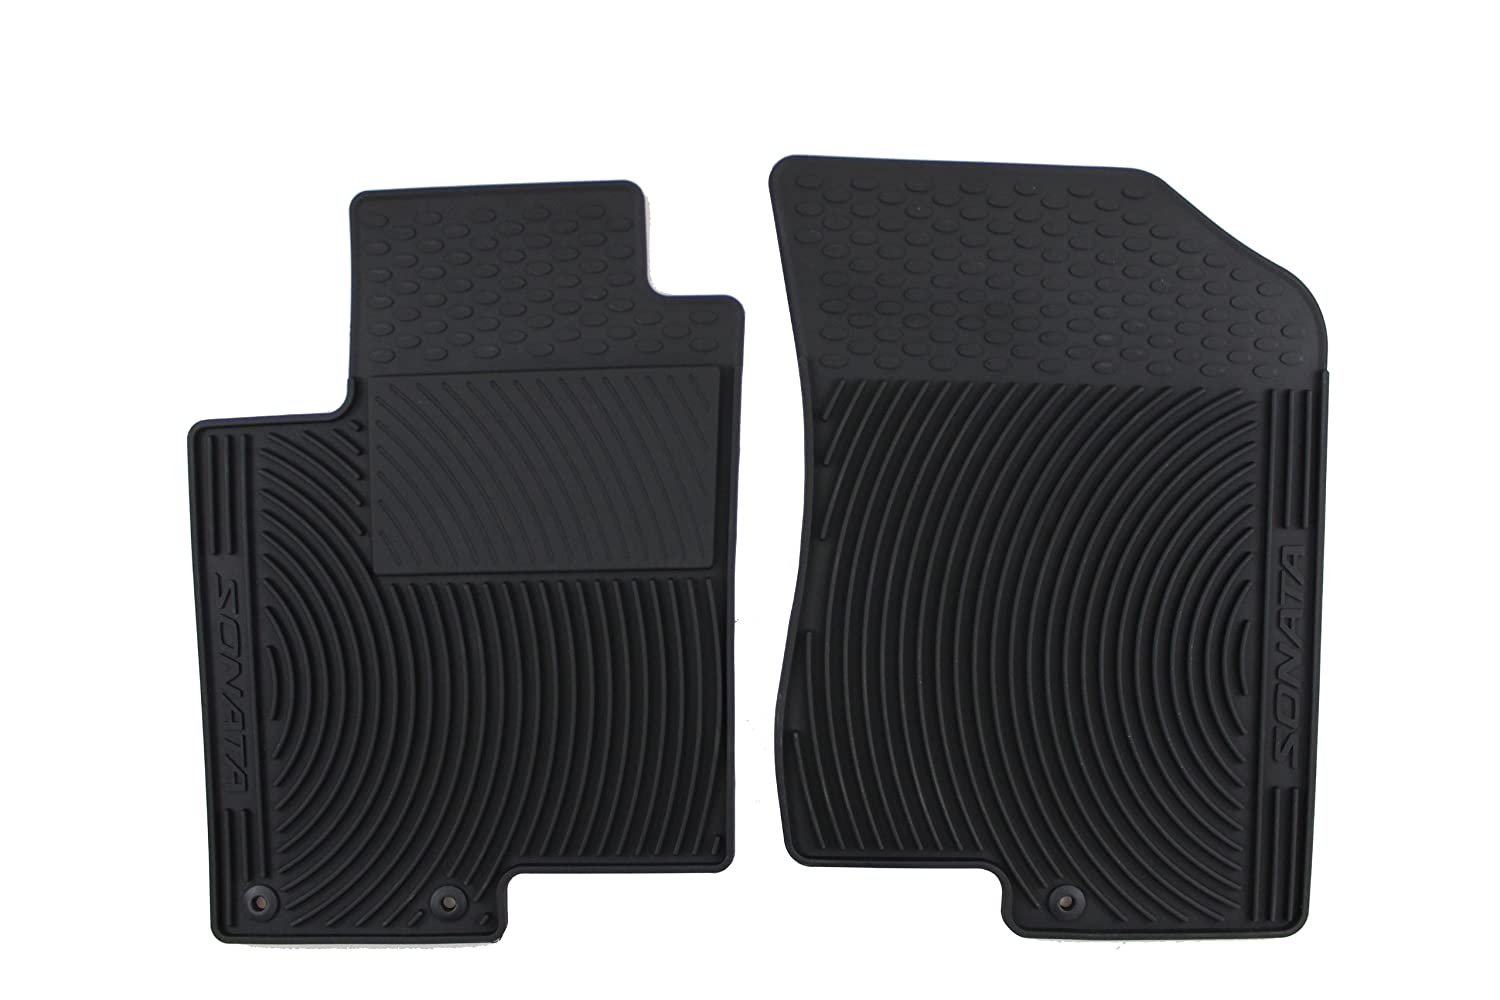 Genuine Hyundai Accessories U8130-3K101 Black Front All Weather Floor Mat with Sonata Logo for Hyundai Sonata